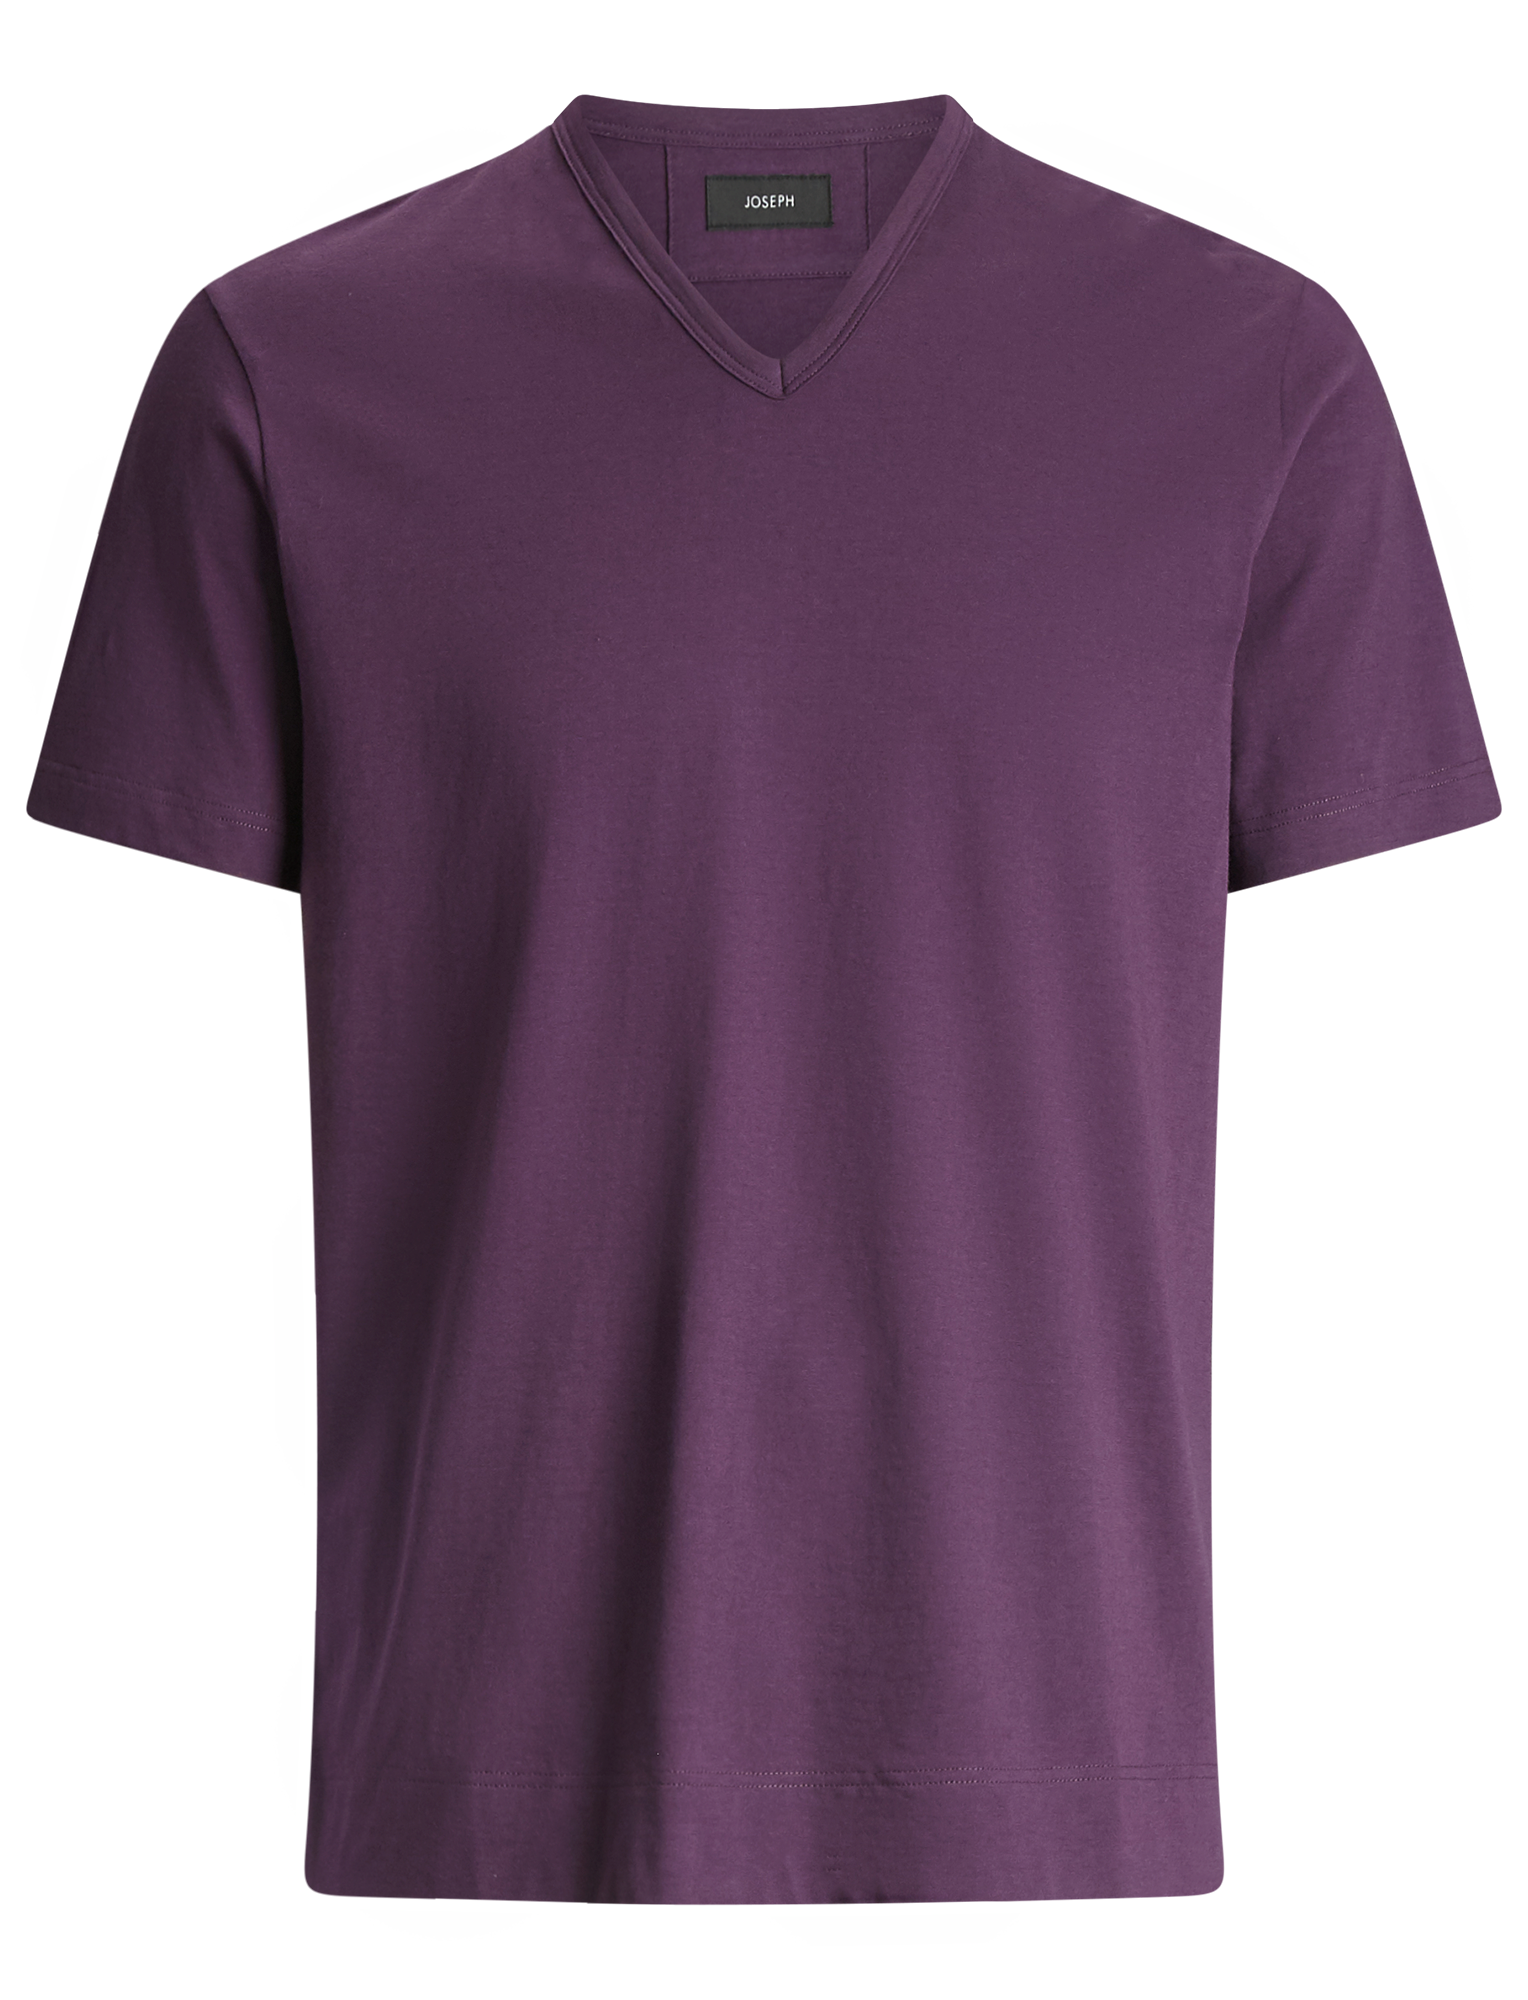 Joseph, V Neck Mercerised Jersey Tee, in AUBERGINE